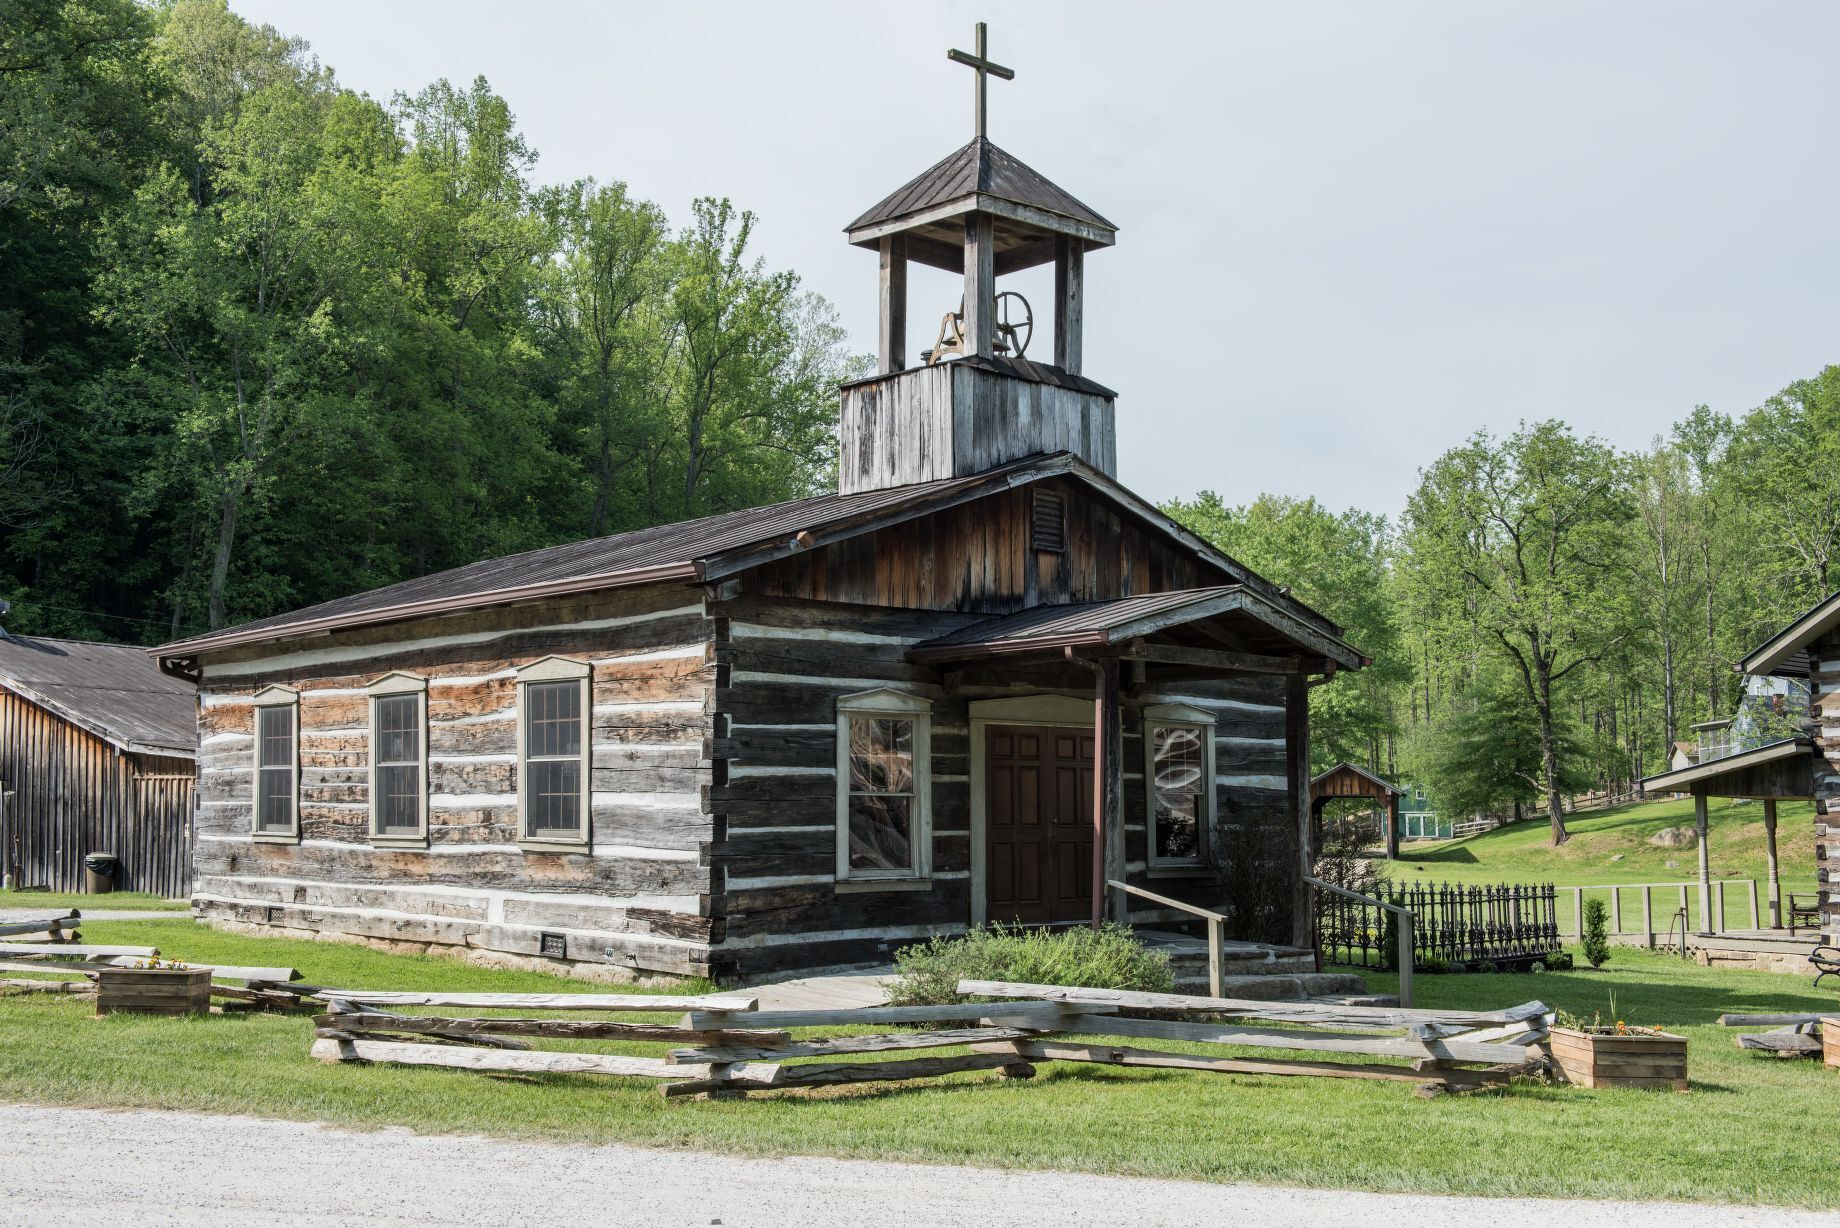 Churches in early Appalachian settlements were often the physical, spiritual, and social centers of the community.